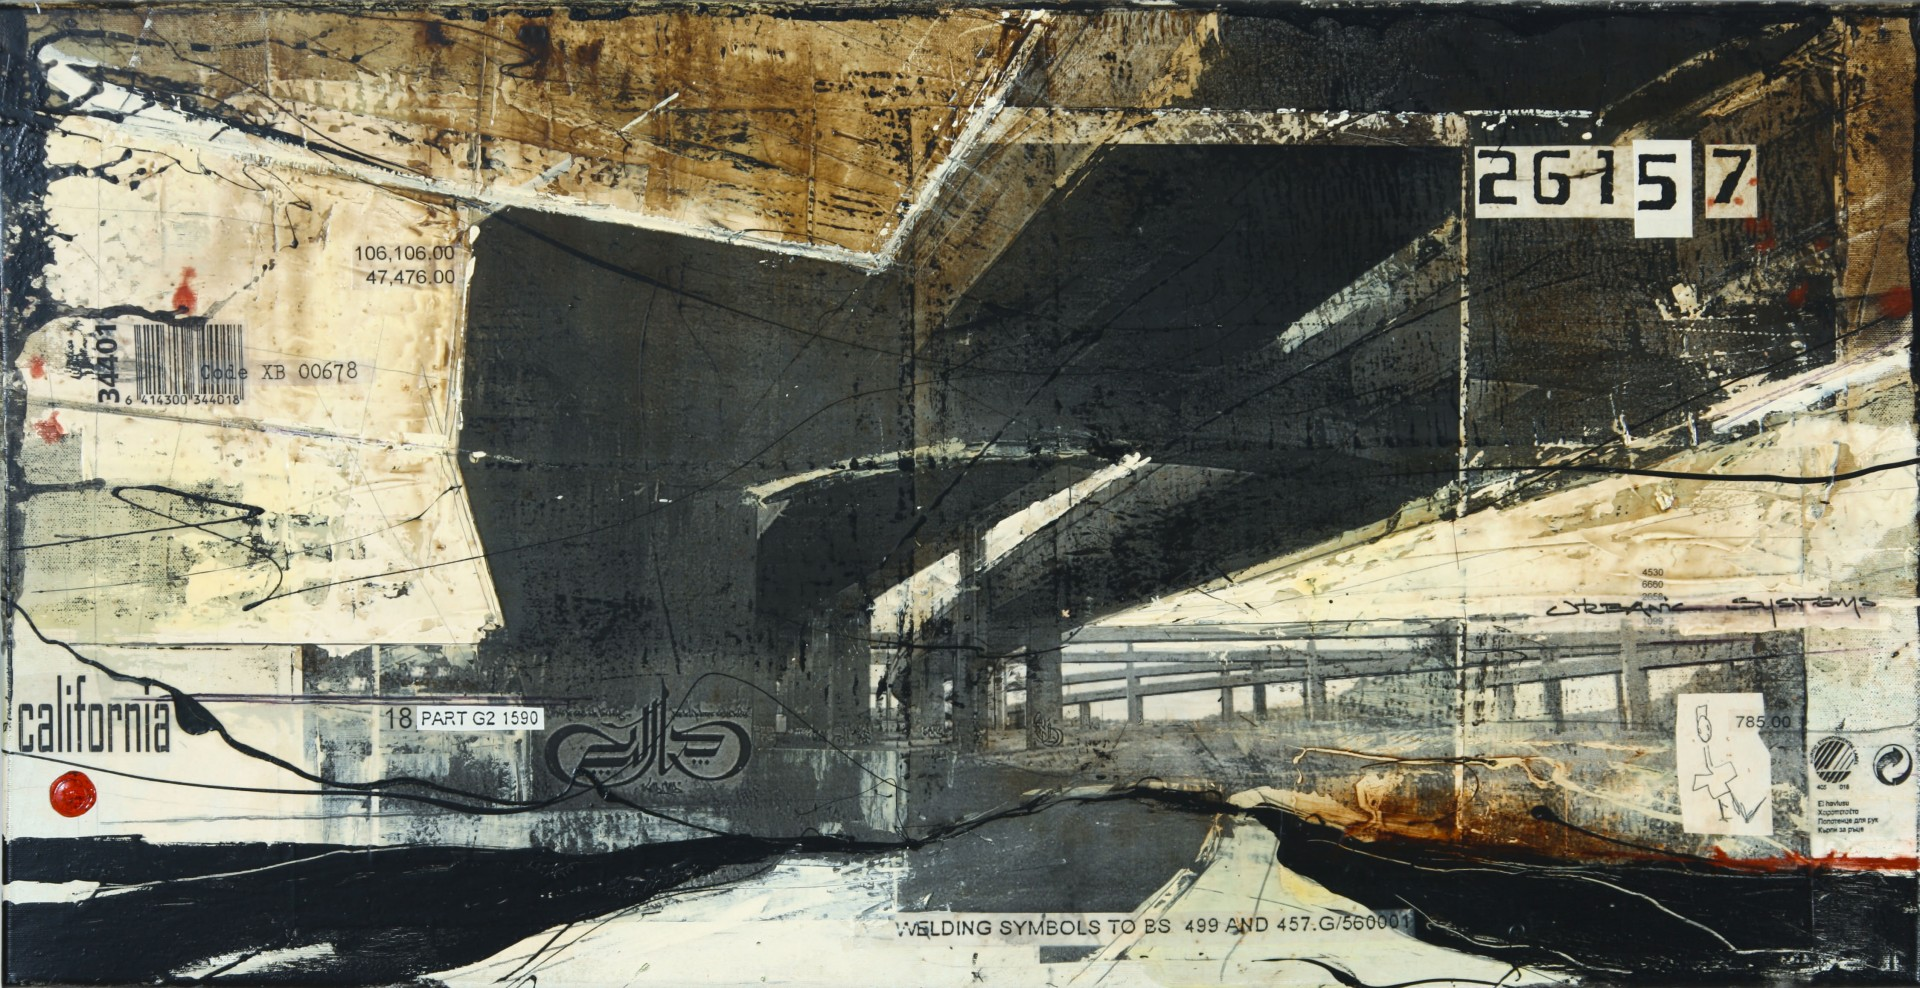 Highways - Los Angeles (USA) - collage photo, huile, acrylique sur toile - 50 x 100 cm - 2010